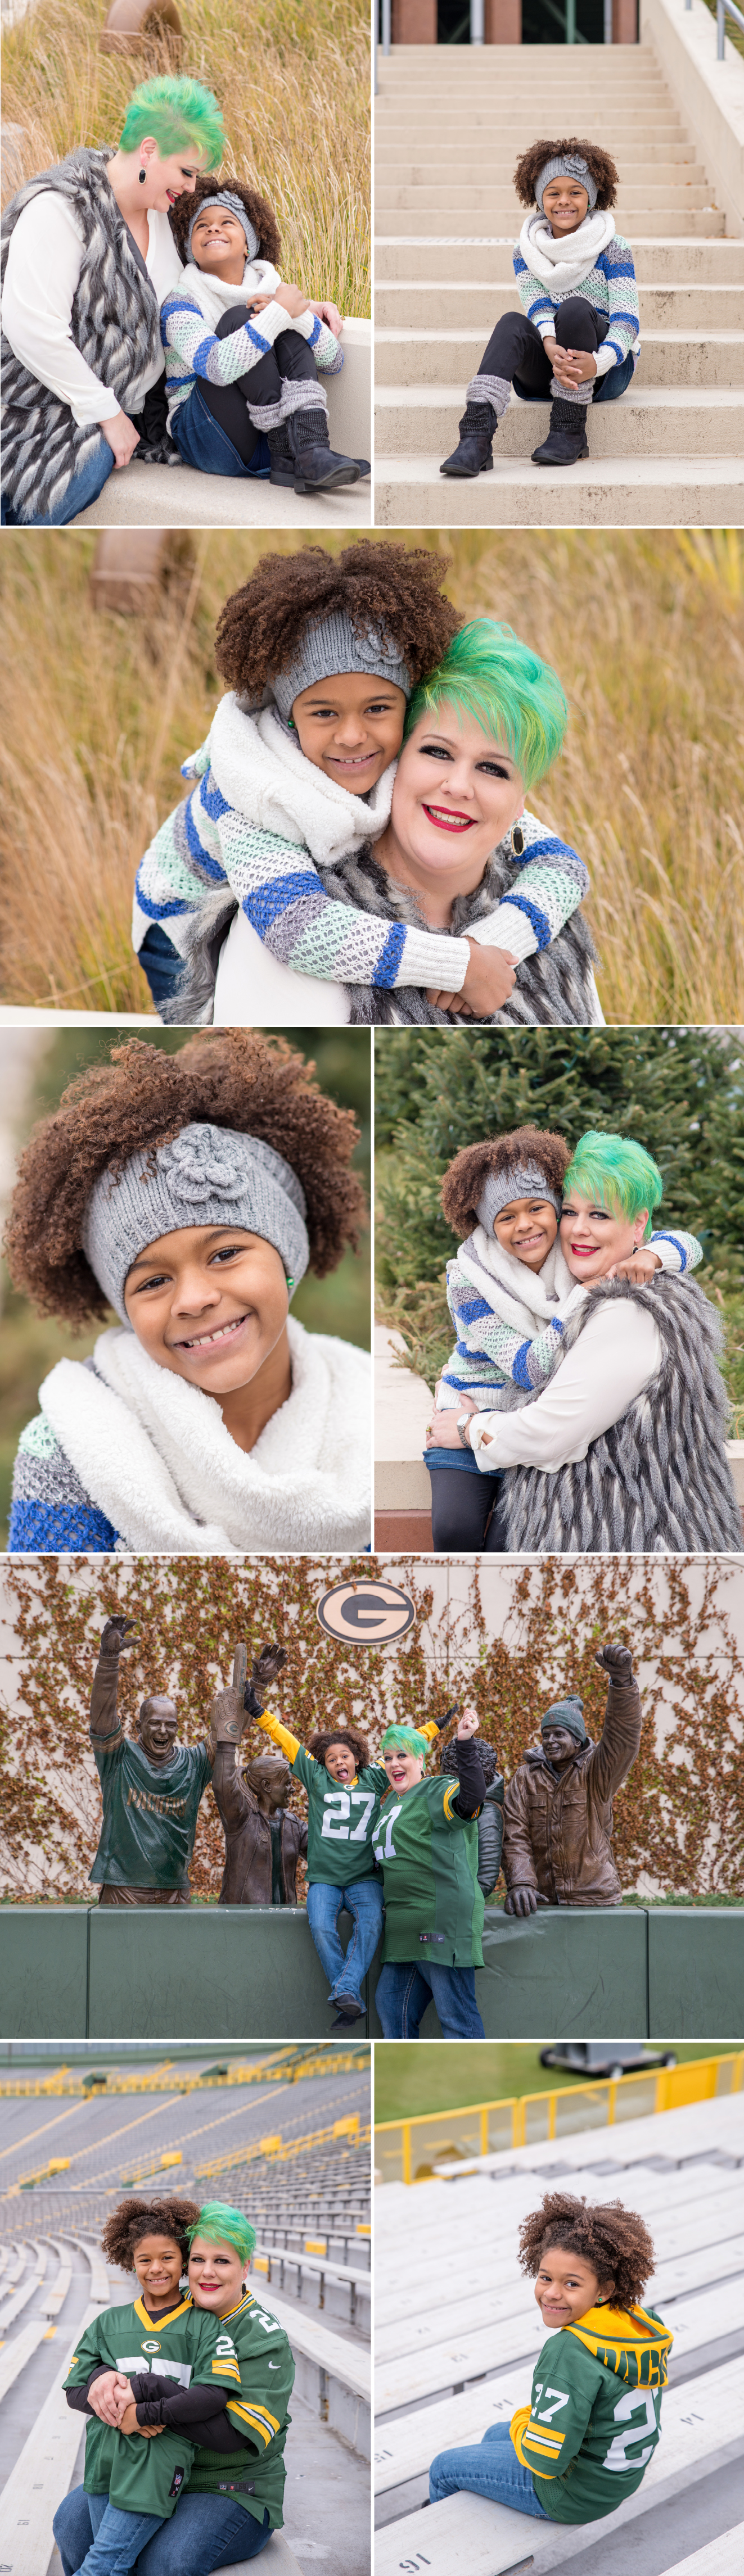 Lambeau-Field-Green-Bay-Family-Photography-Packers-Photographer-Winter-Kids-Children